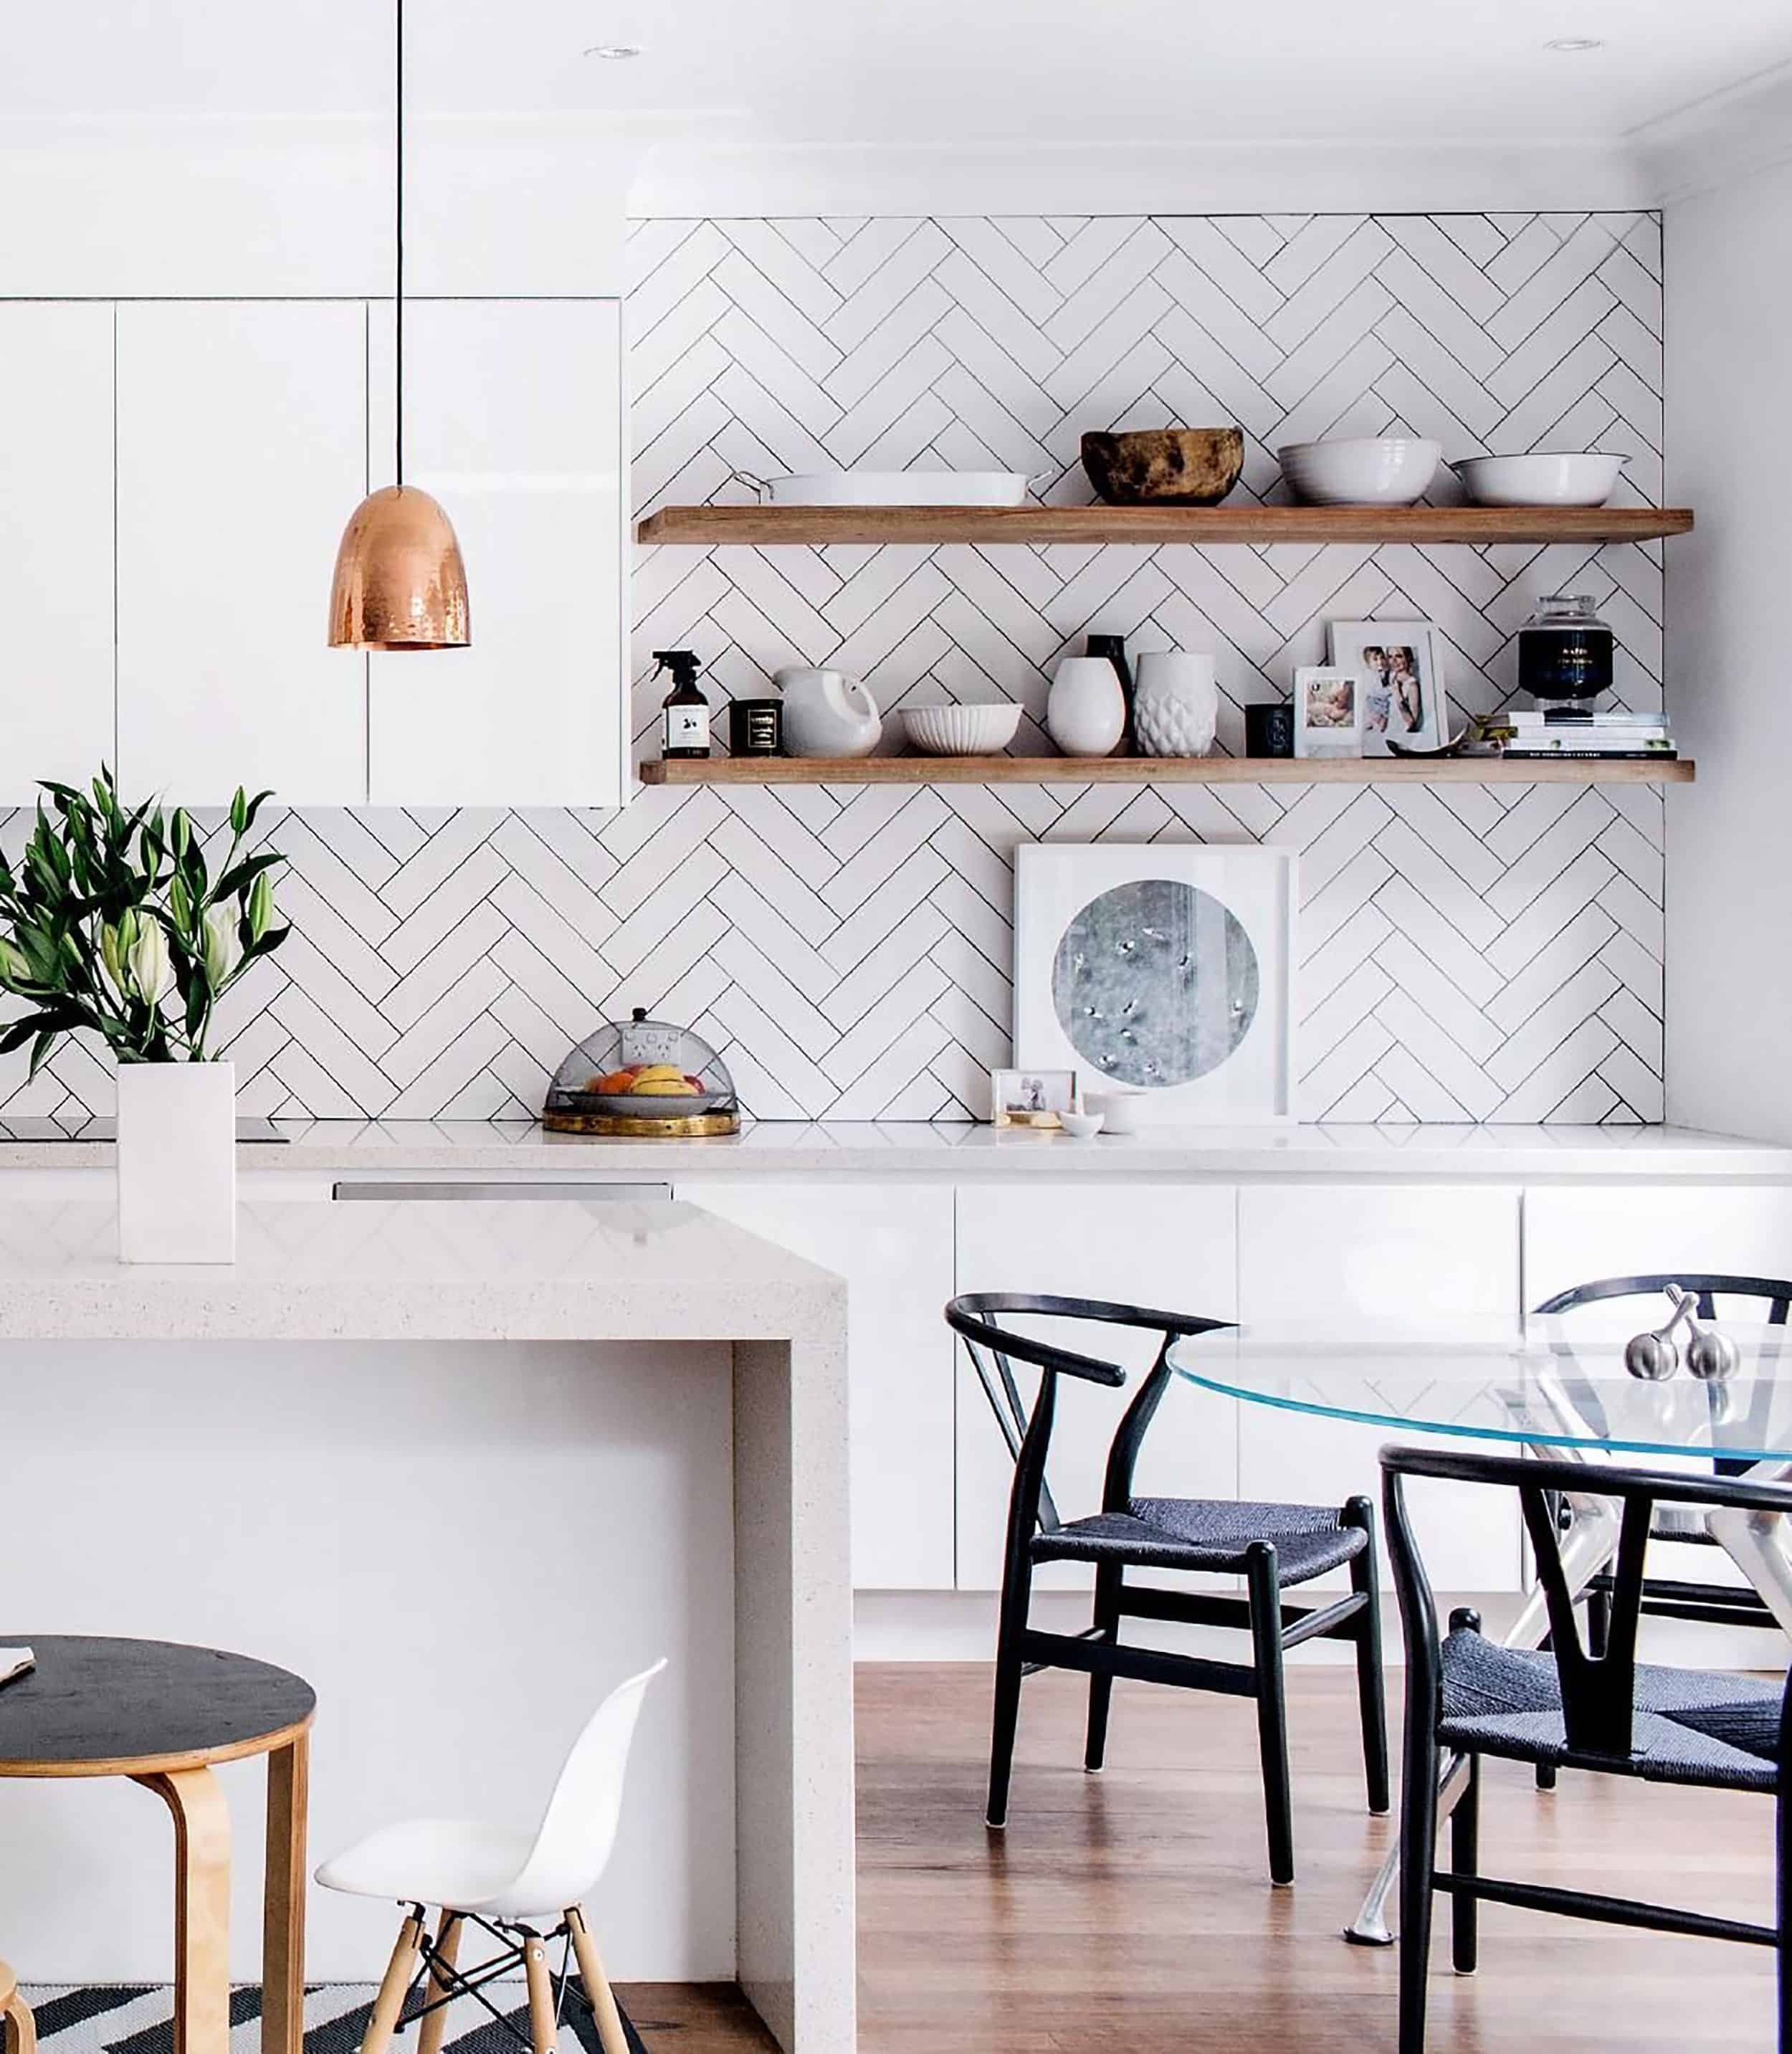 Kitchens With No Uppers Insanely Gorgeous Or Just Insane Emily Henderson